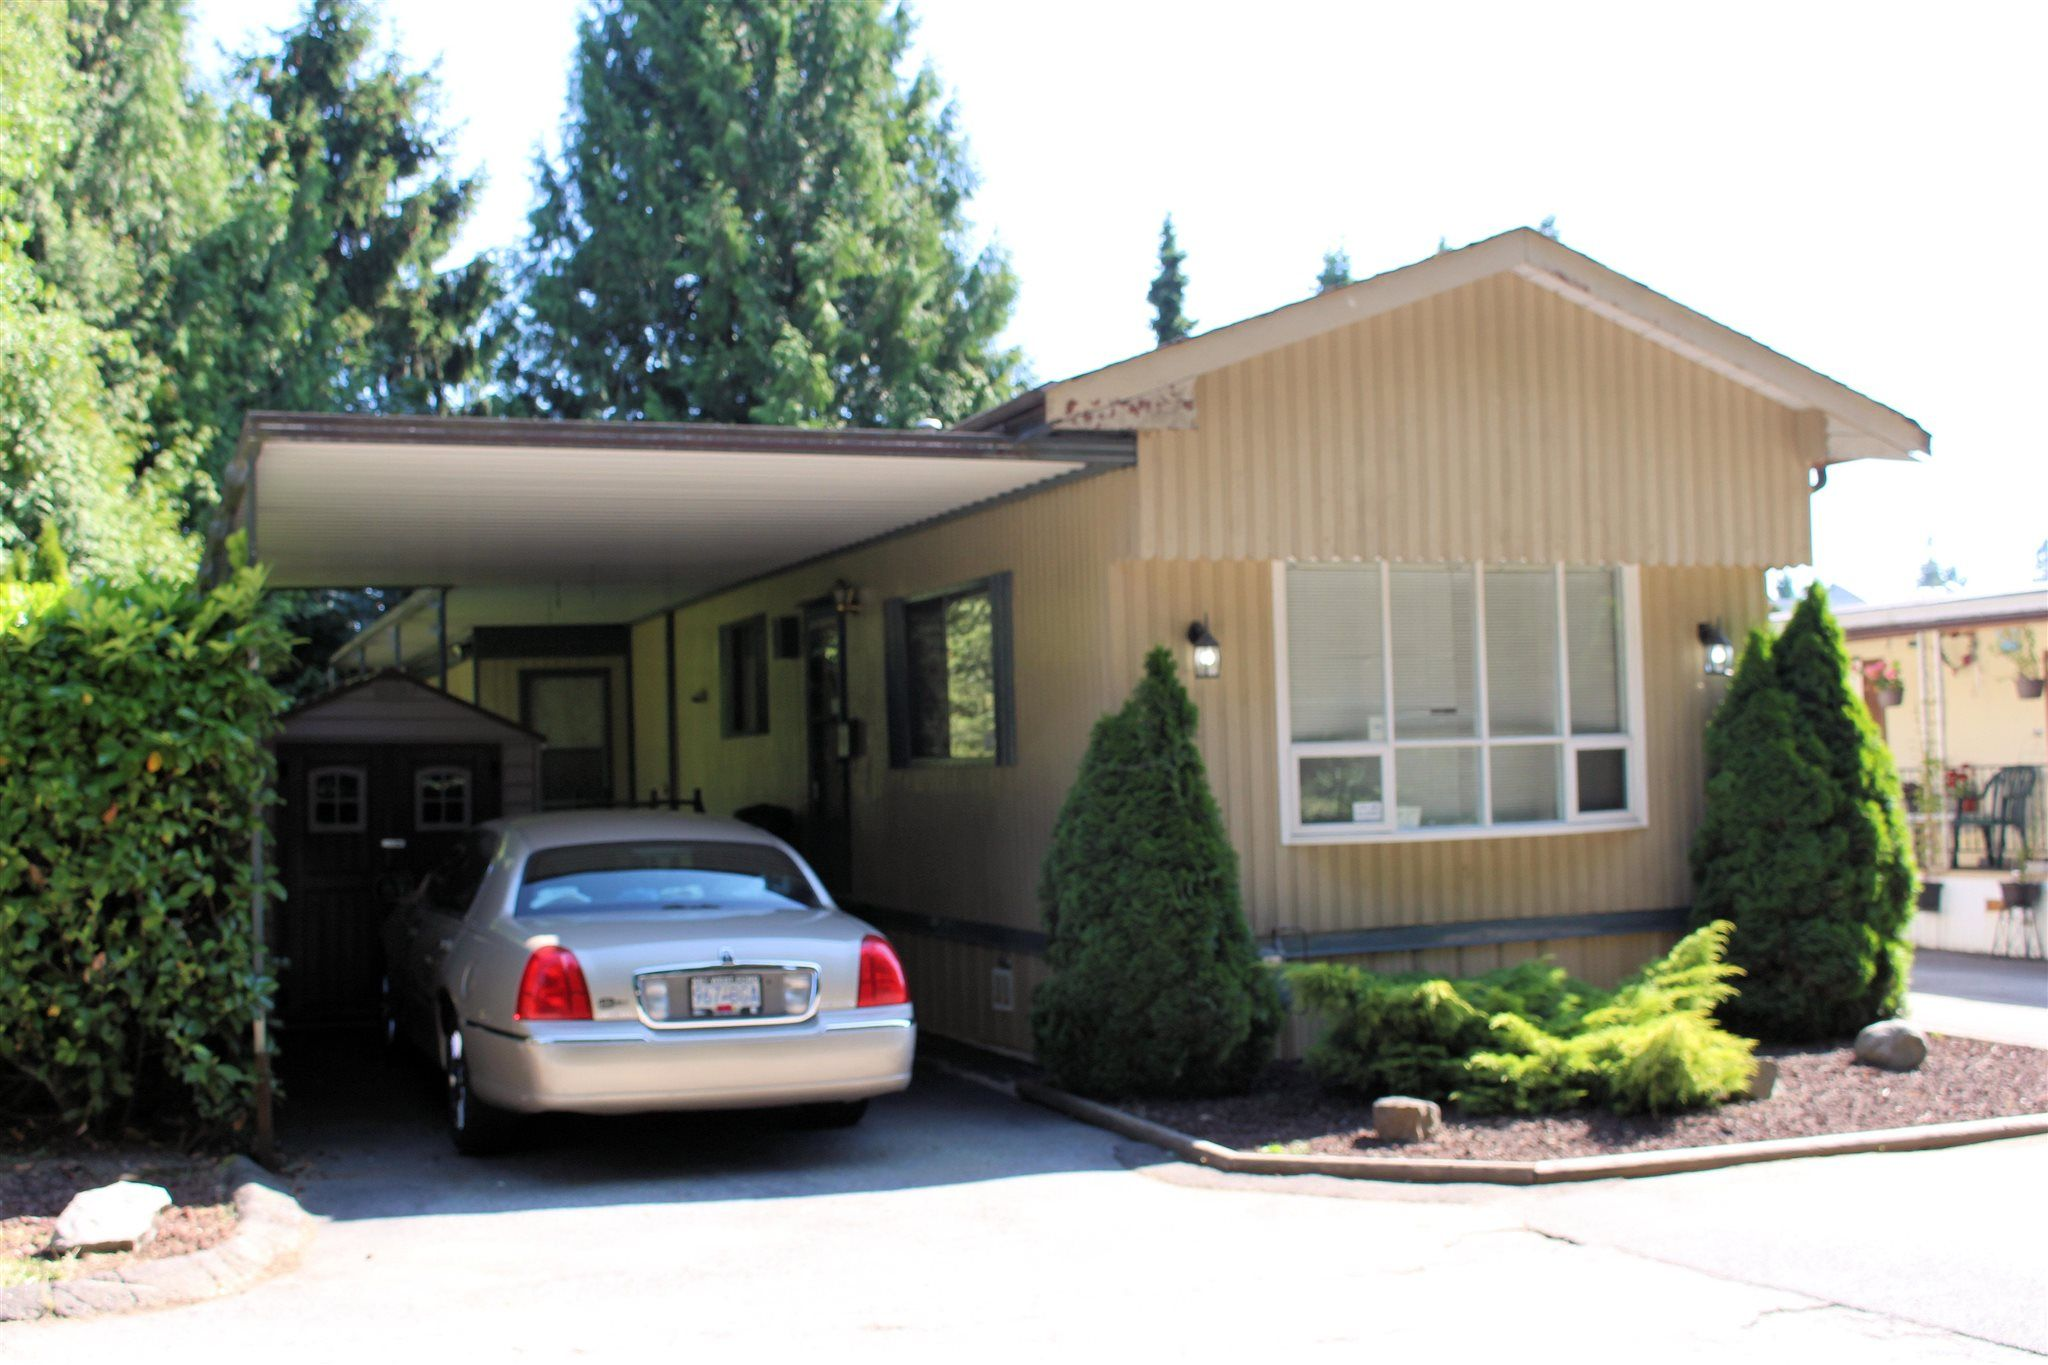 """Main Photo: 5 21163 LOUGHEED Highway in Maple Ridge: Southwest Maple Ridge Manufactured Home for sale in """"VAL MARIA MOBILE HOME PARK"""" : MLS®# R2598926"""